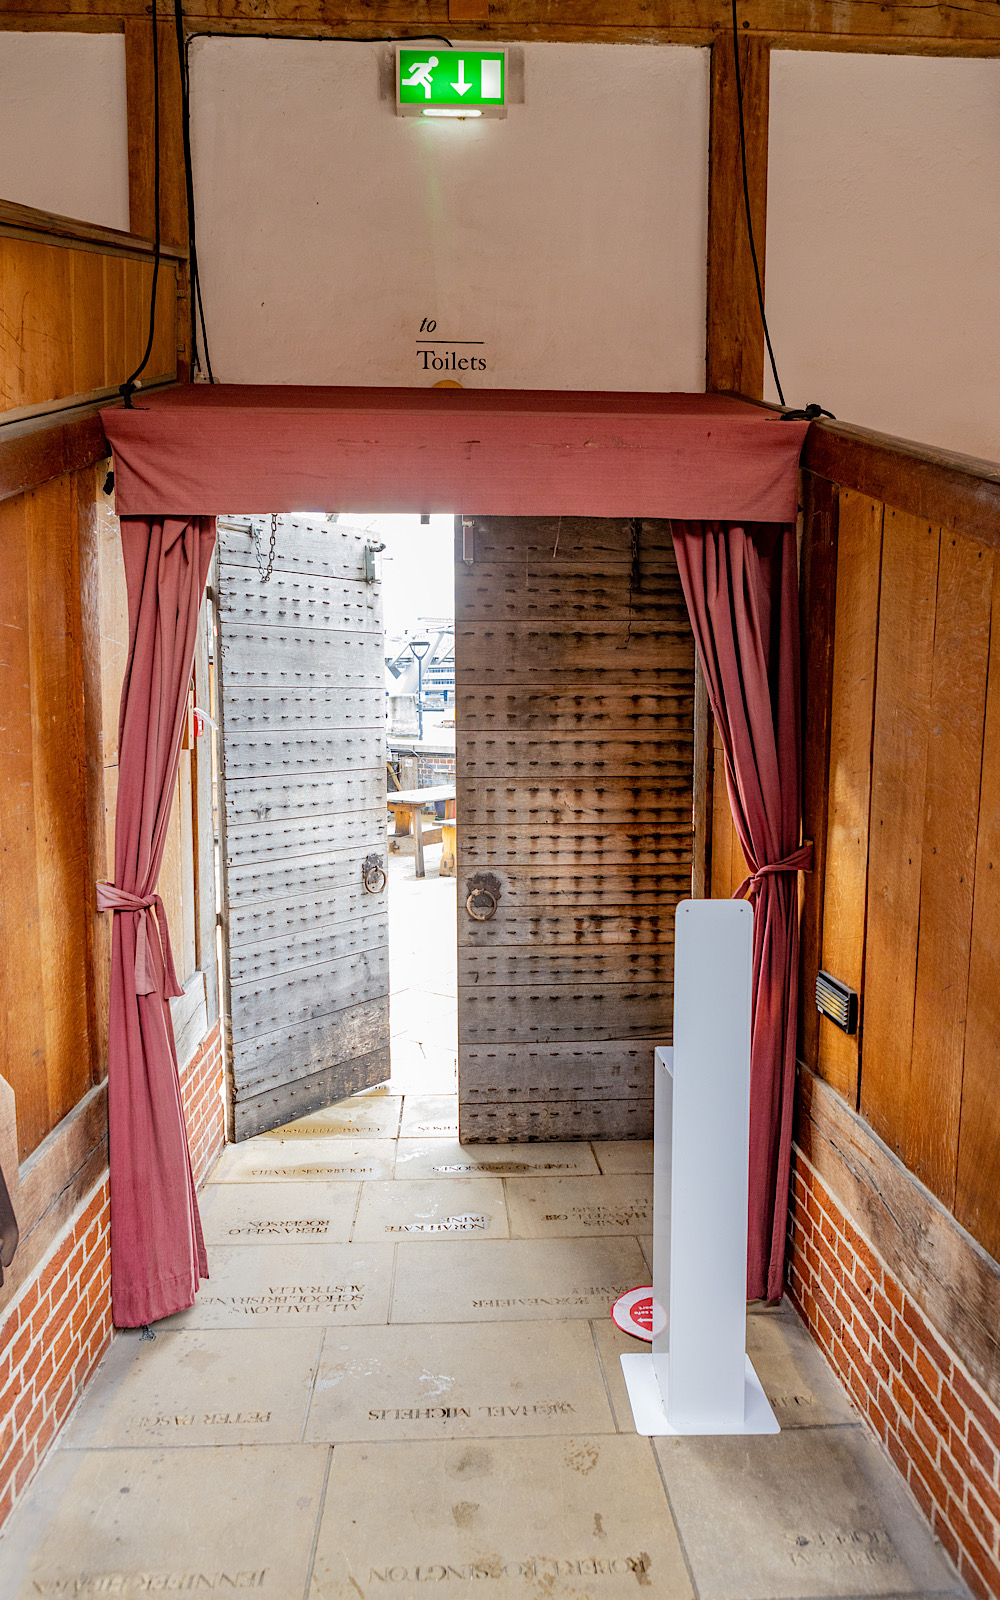 From the inside of a wooden theatre, doors lead to the outside, they have red curtains around them and a hand sanitising station behind them